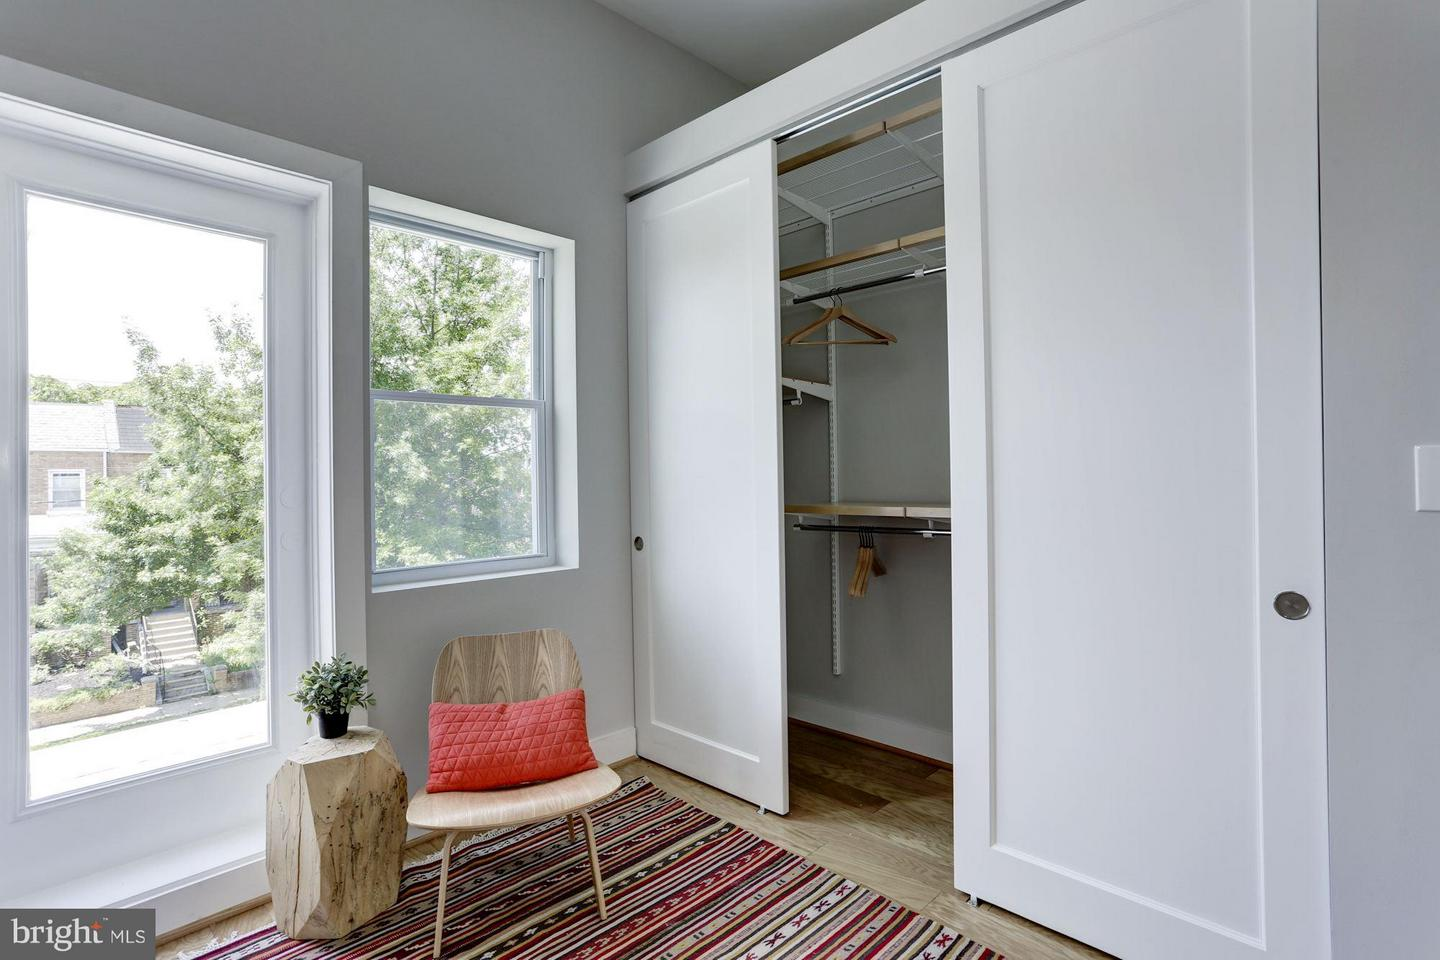 Additional photo for property listing at 4631 5th St NW 4631 5th St NW Washington, District Of Columbia 20011 United States